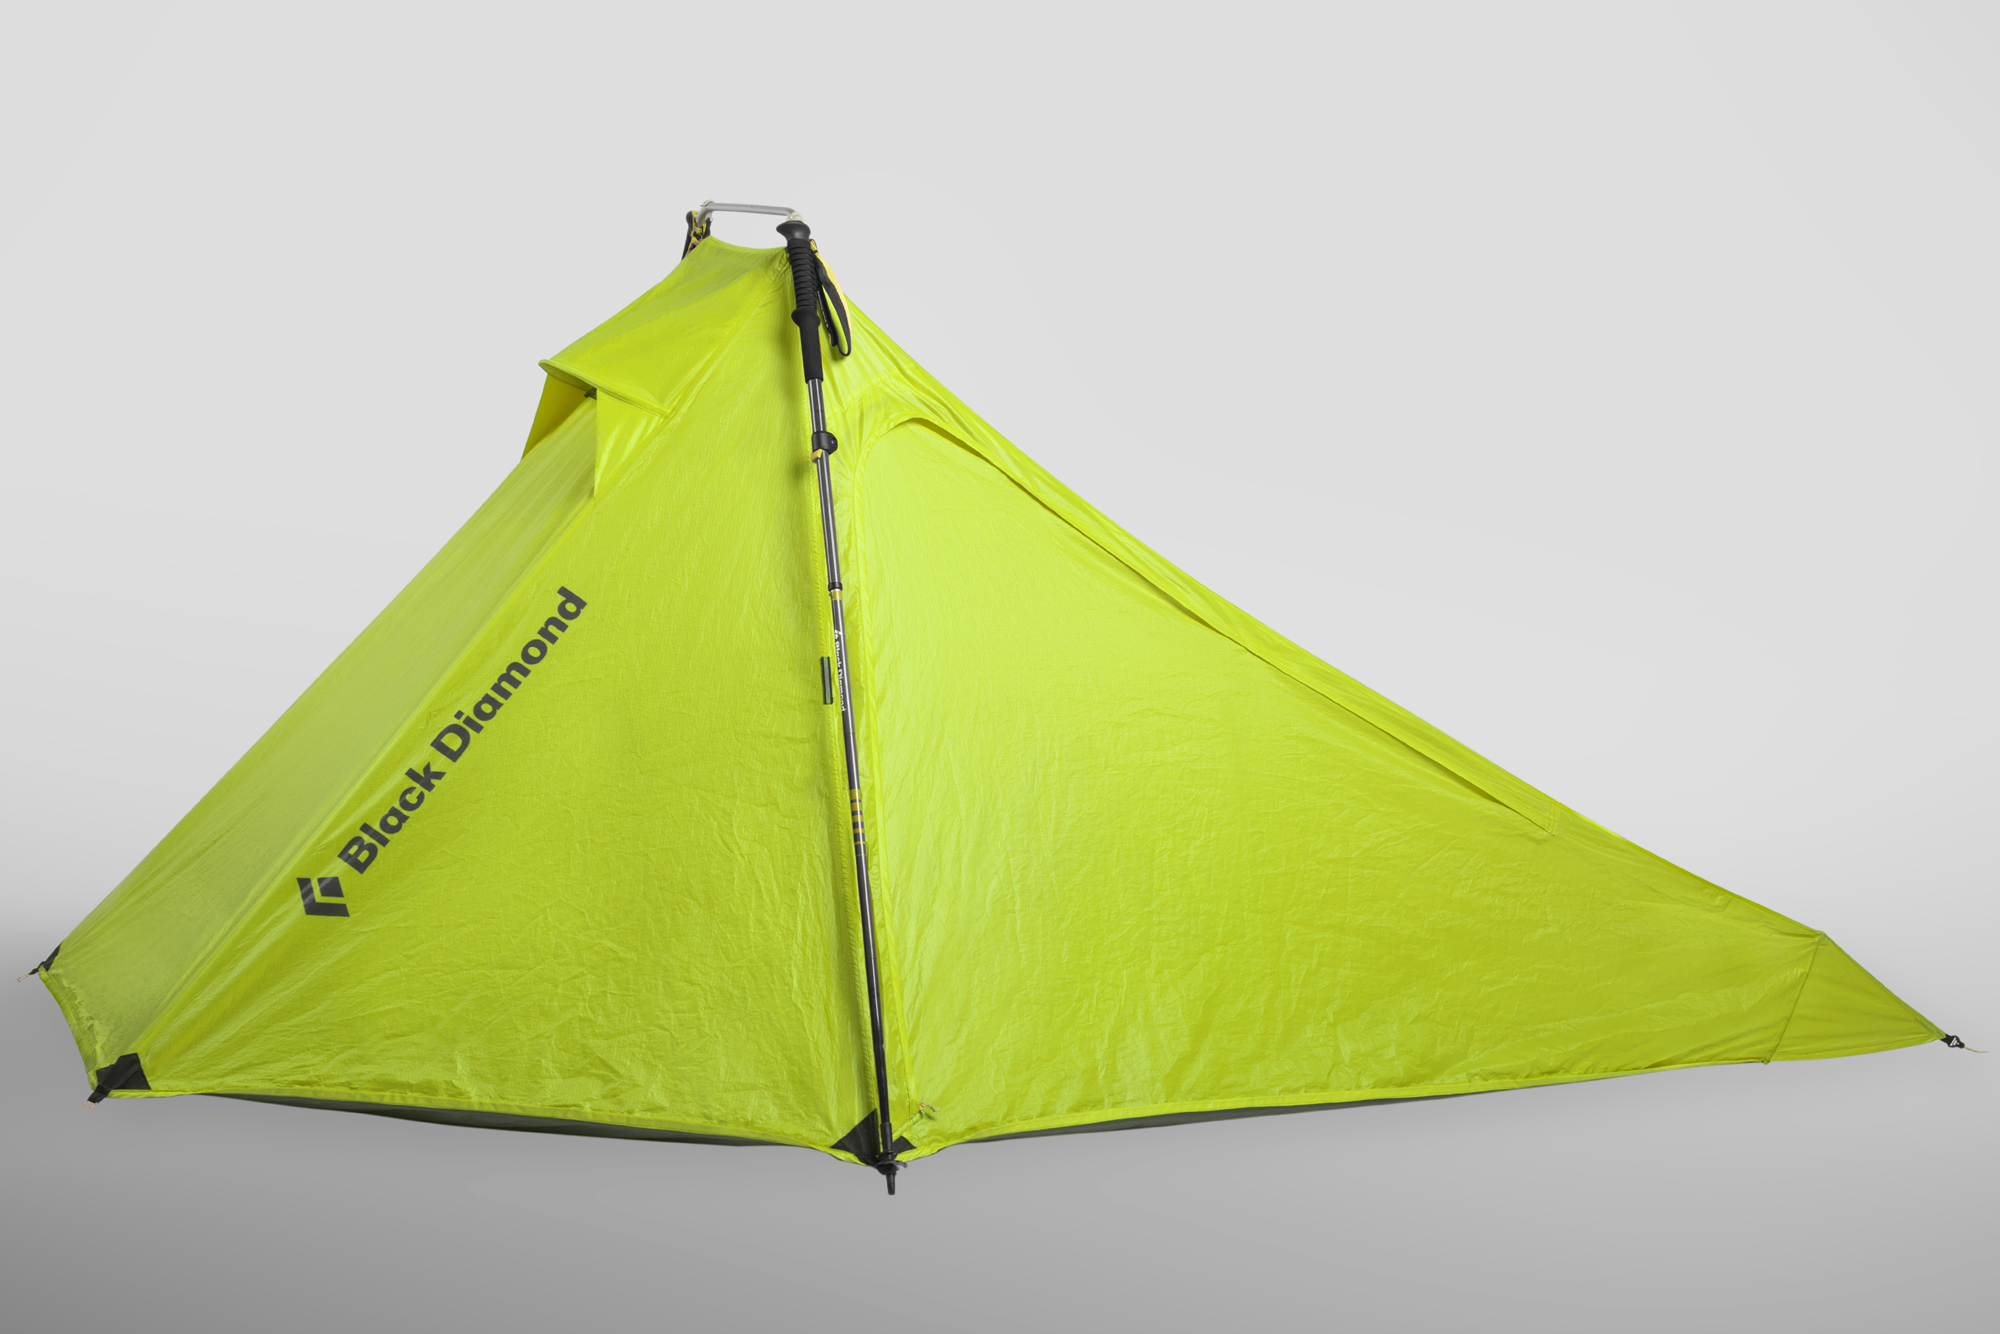 Black Diamond The Distance tent